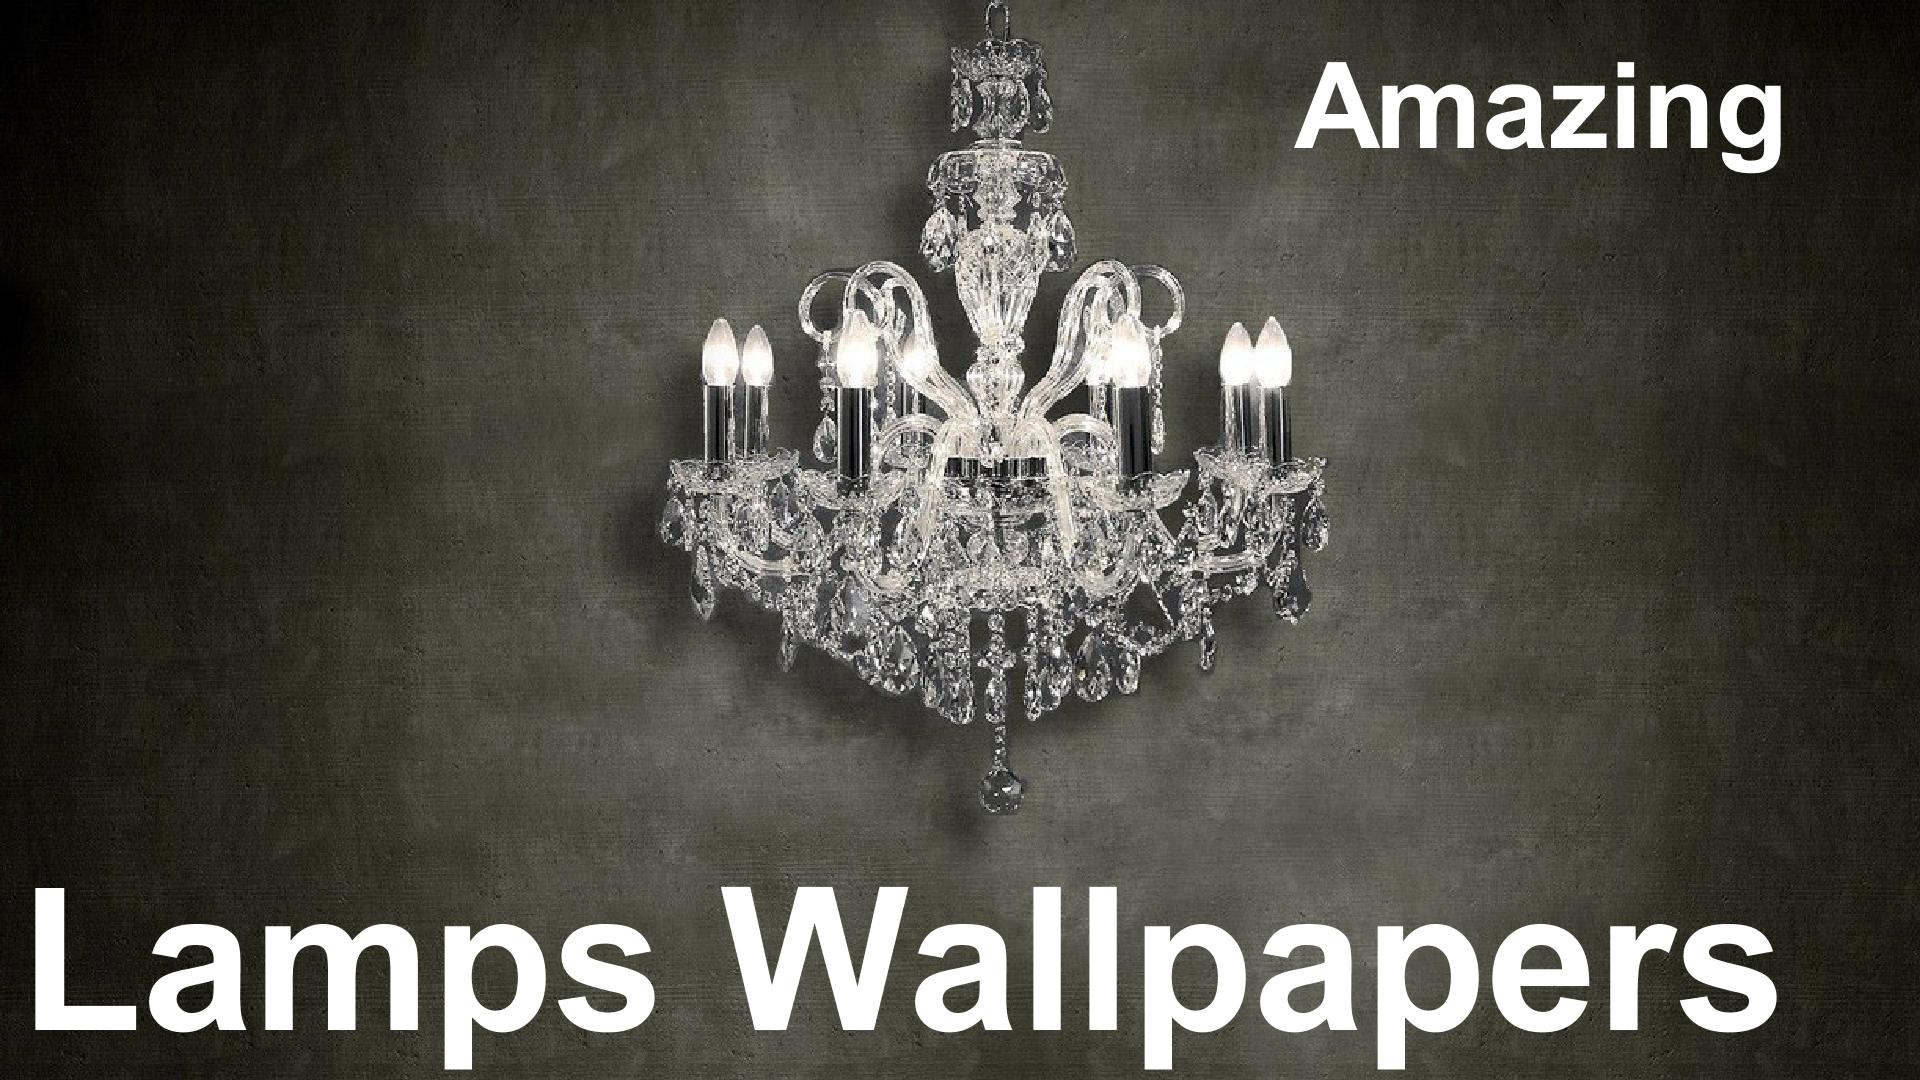 Lamps Wallpapers And Background Editing For Android Apk